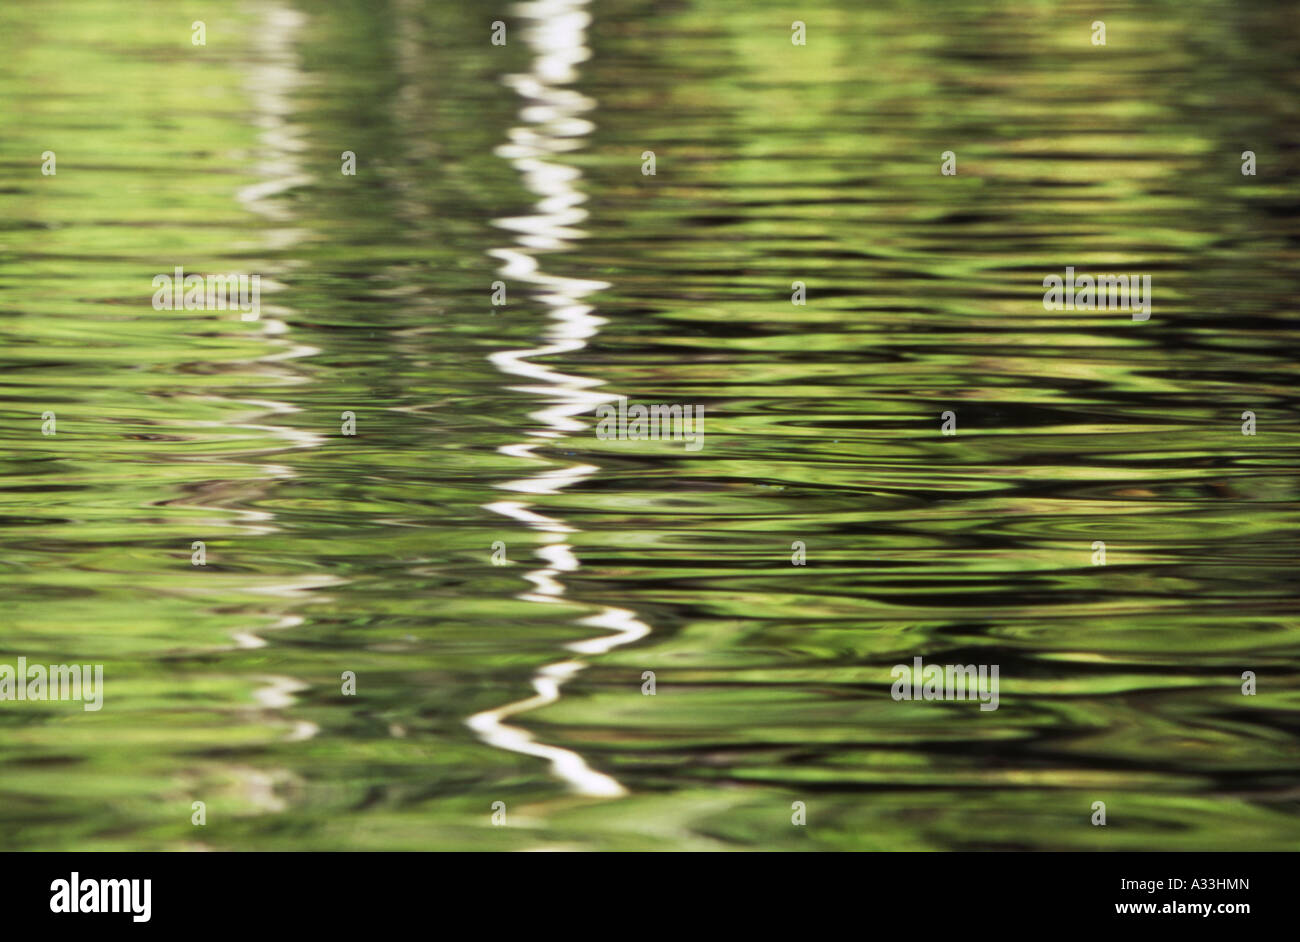 Reflections on Rippled water surface at Wangi Falls plunge pool Litchfield National Park Northern Territory Australia - Stock Image